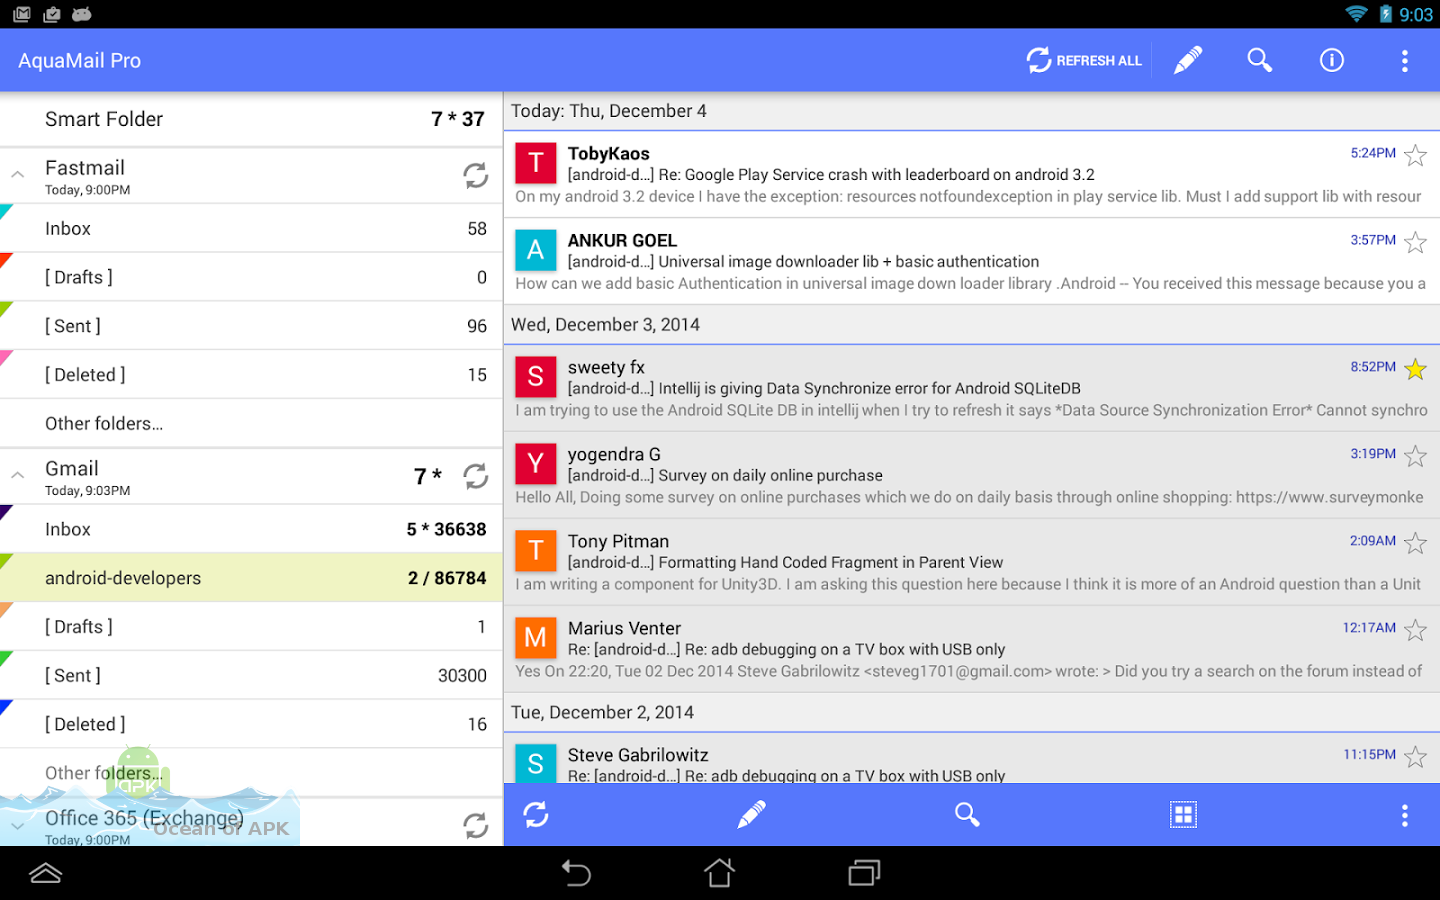 Aqua Mail Pro APK Download For Free